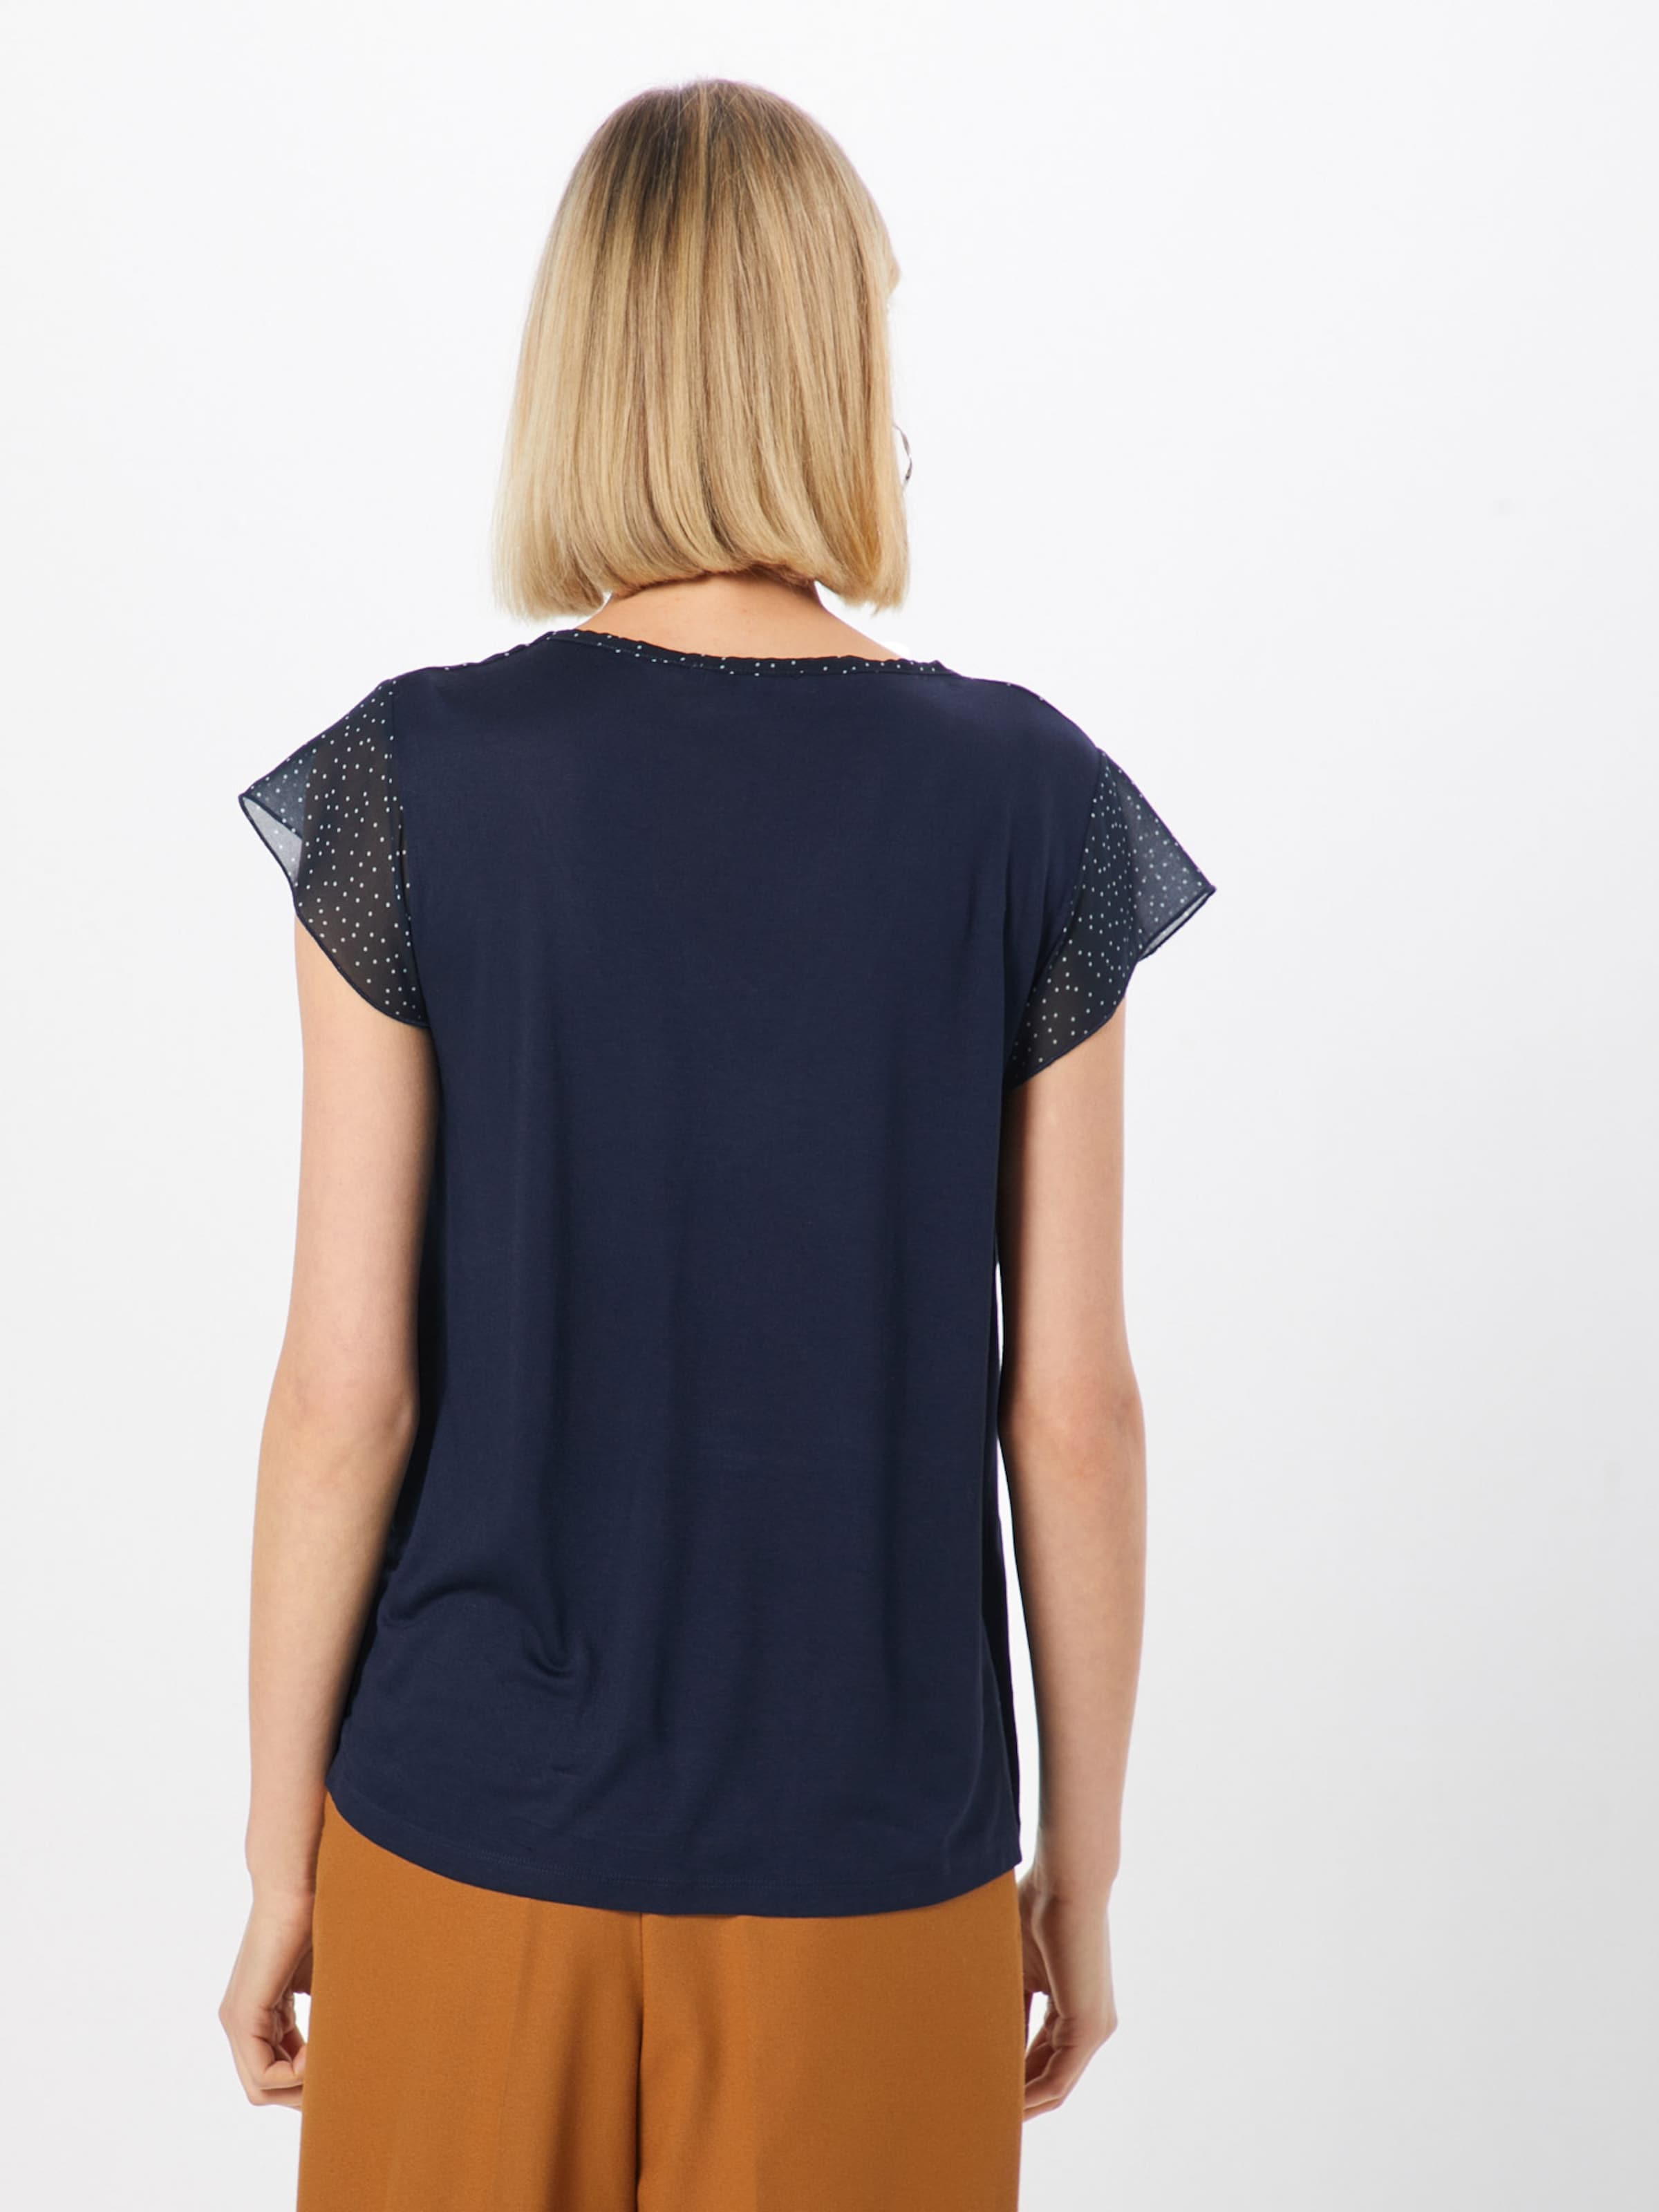 Bluse You 'claudia' Navy About In BoWQrdxeC